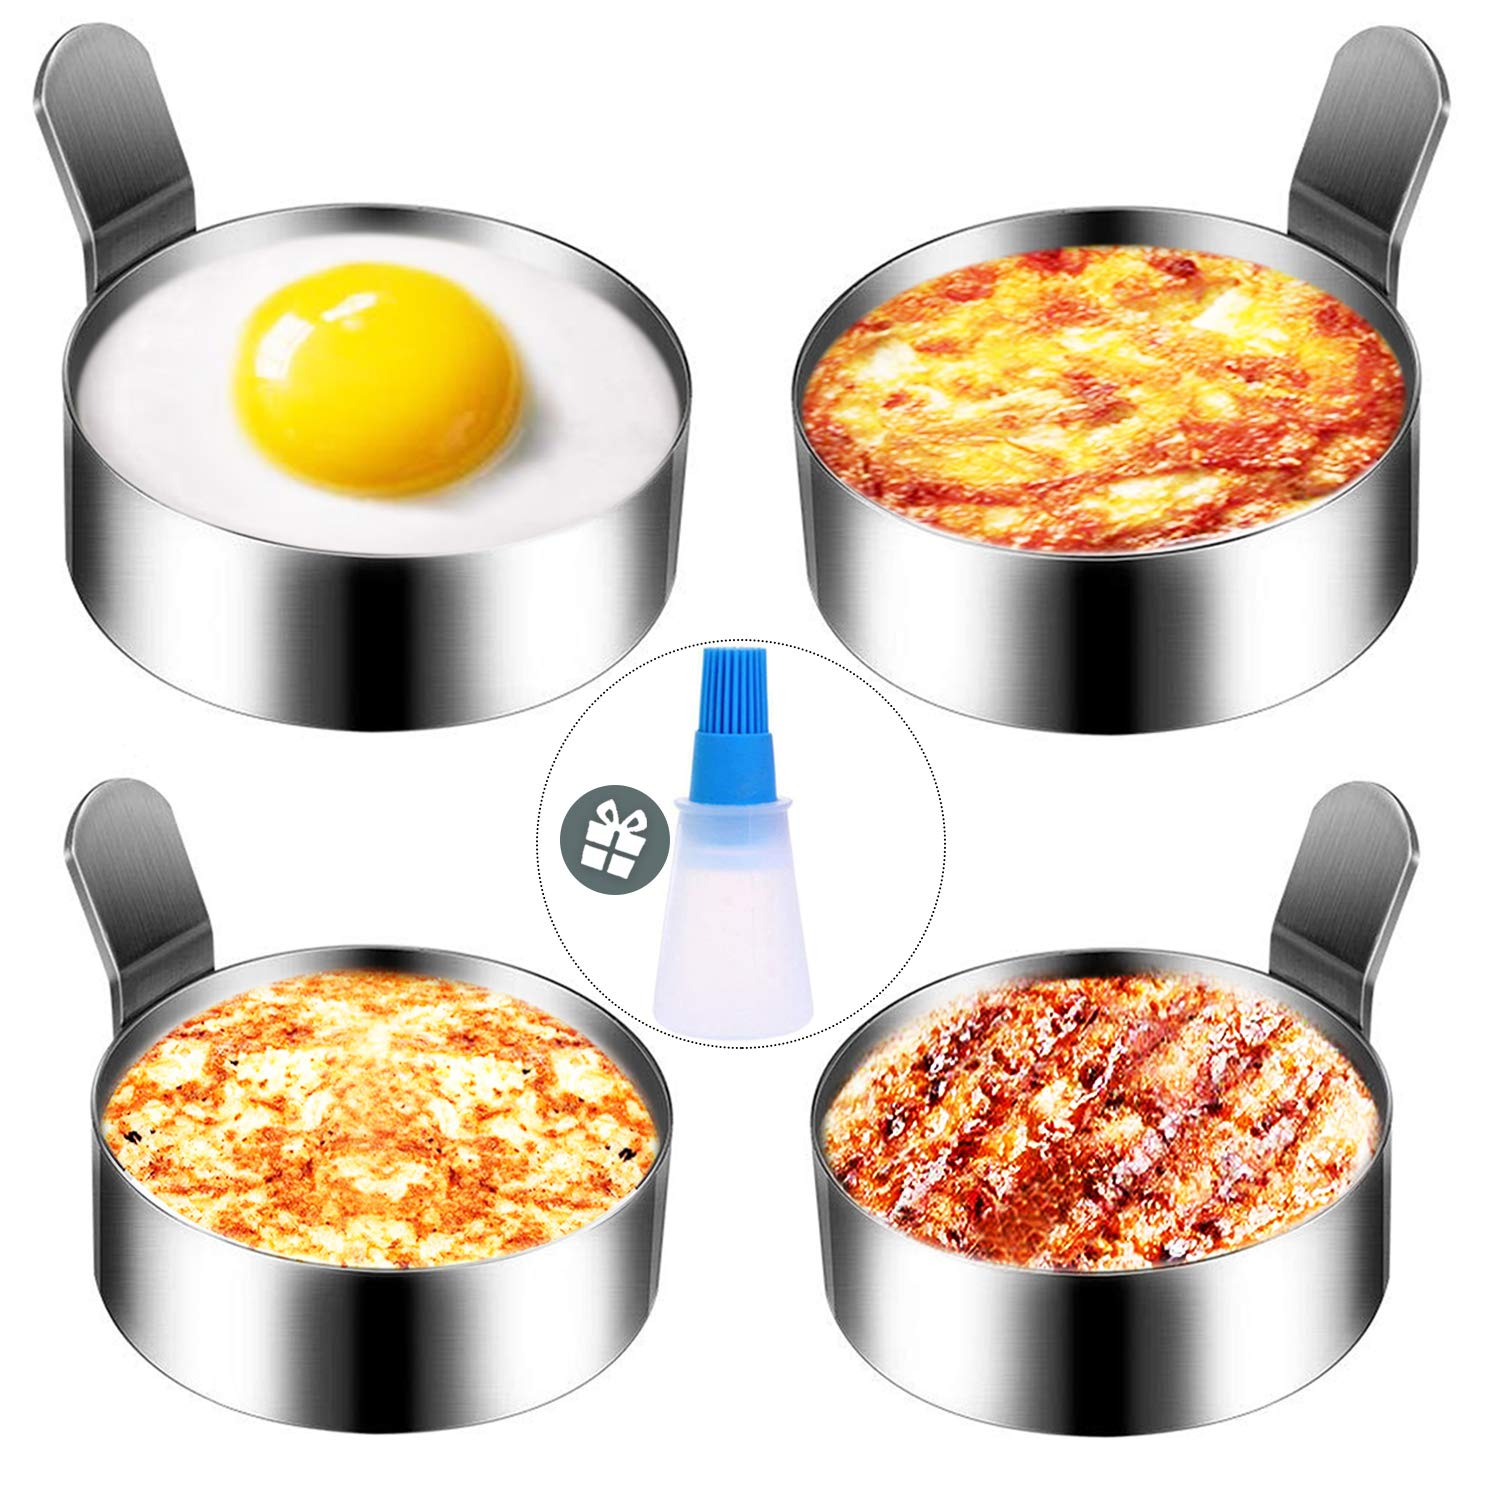 Egg Ring, Hanamichi 2 Size Mold 4 Packs Egg Cooking Pancake Rings Stainless Steel Non Stick Omelet Mold Cooking Tool - 3.5 Inch & 3.0 Inch by Hanamichi